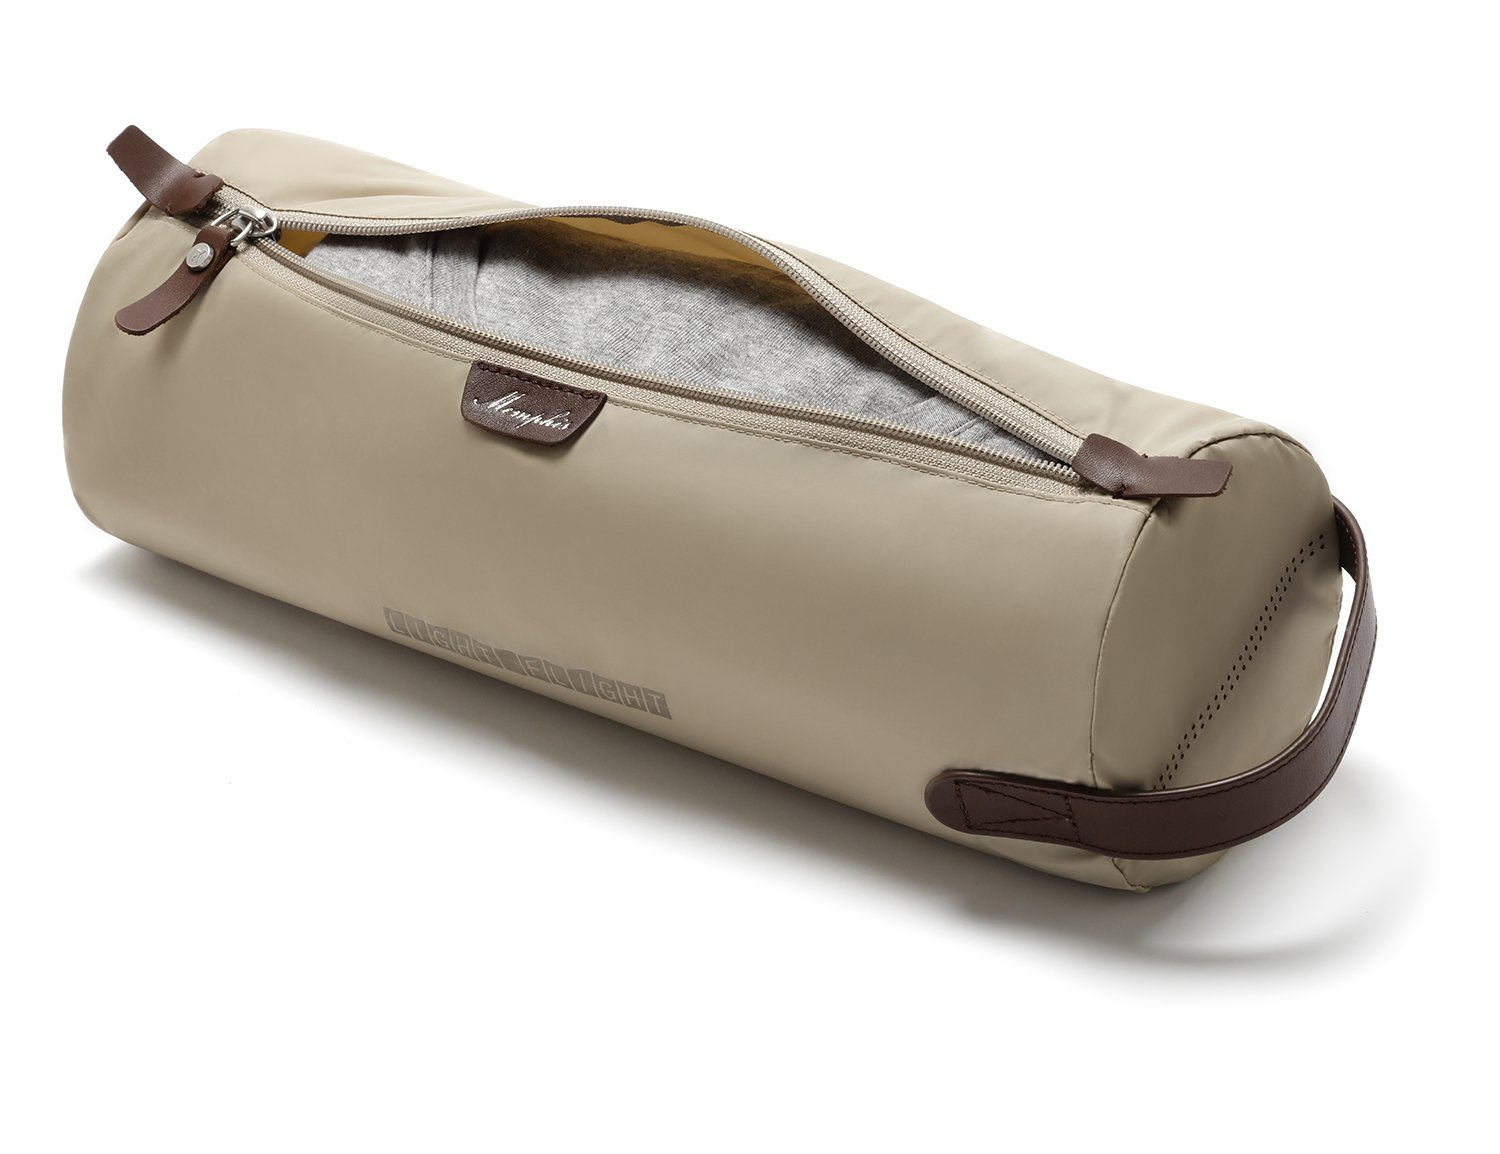 LIGHT FLIGHT Slim Roll Large Packing Pouch Travel Packing Organizer for Carry-on Luggage, Suitcase, Beige